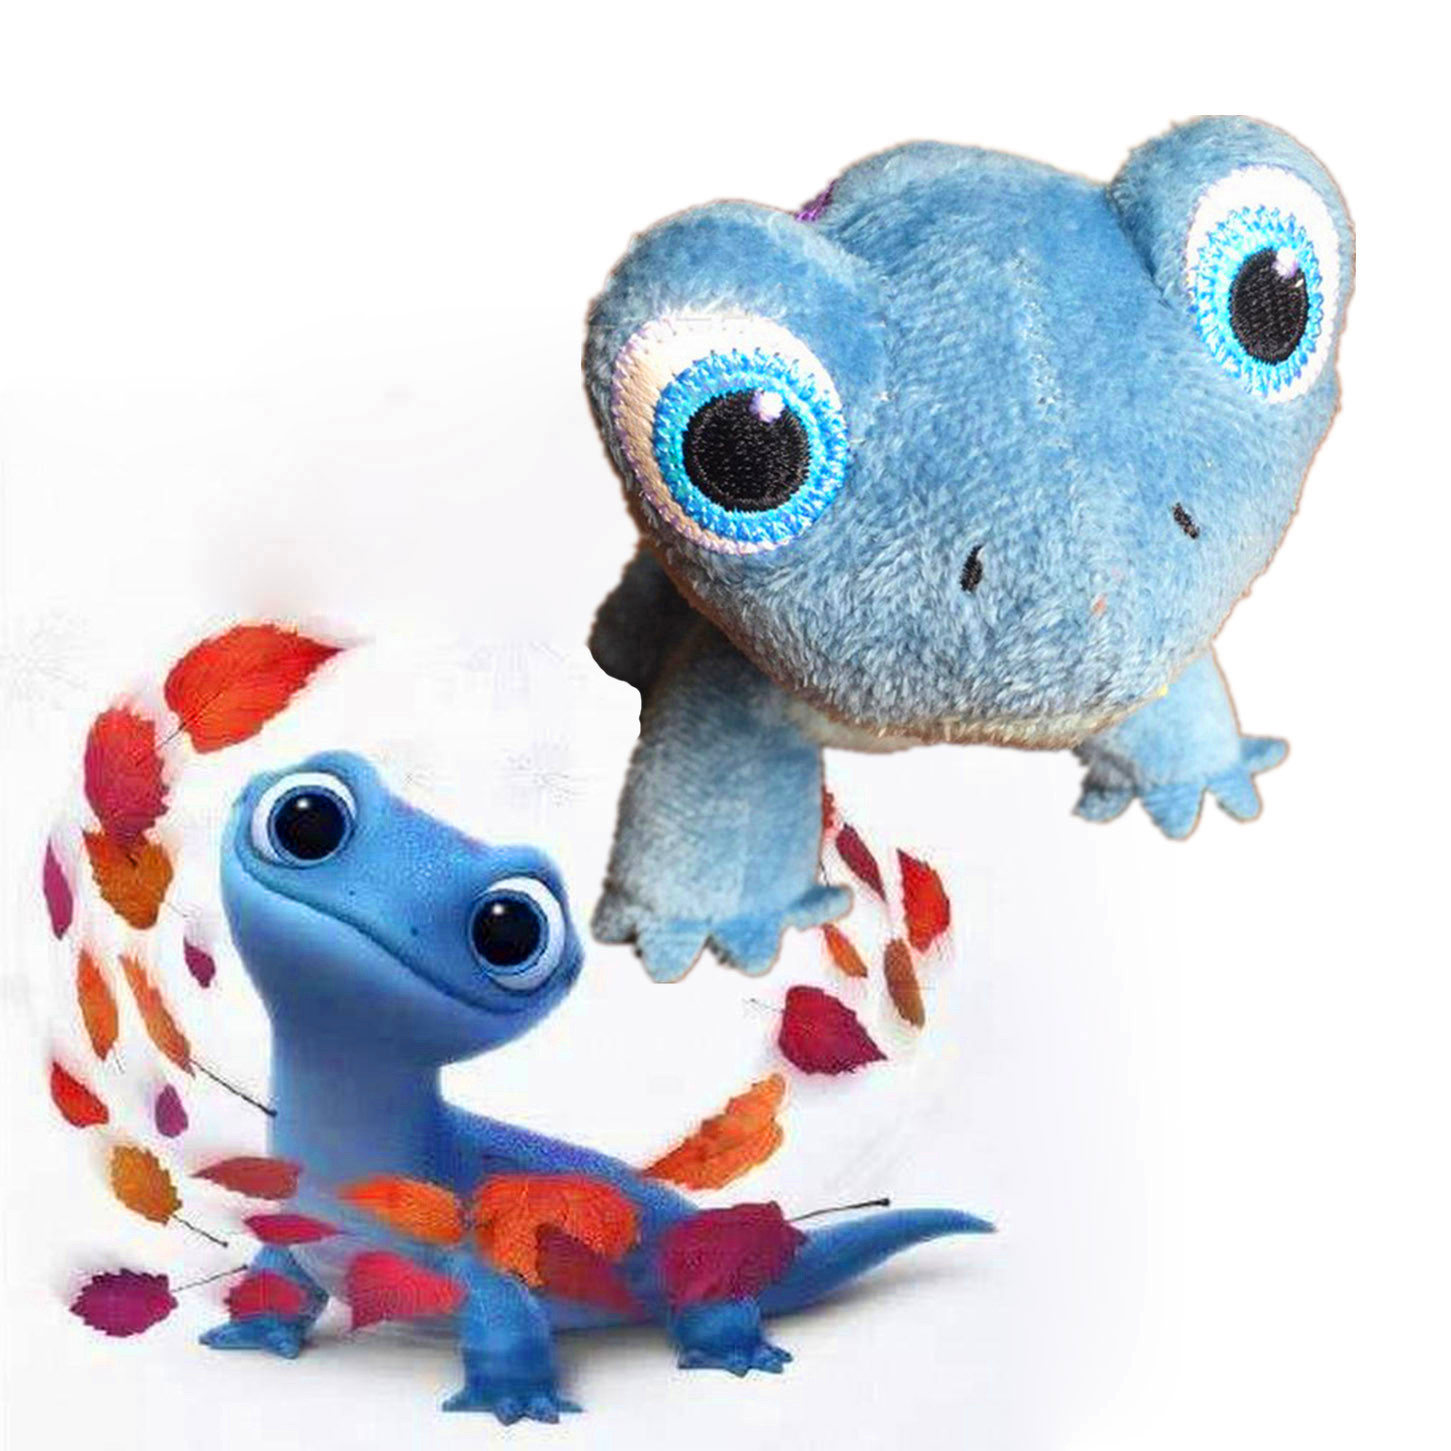 Stuffed Disney Movie Frozen 2 BRUNI The Salamander Plush Dolls Toys For Children Frozen Blue Salamander Cotton Stuffed Gift Toys